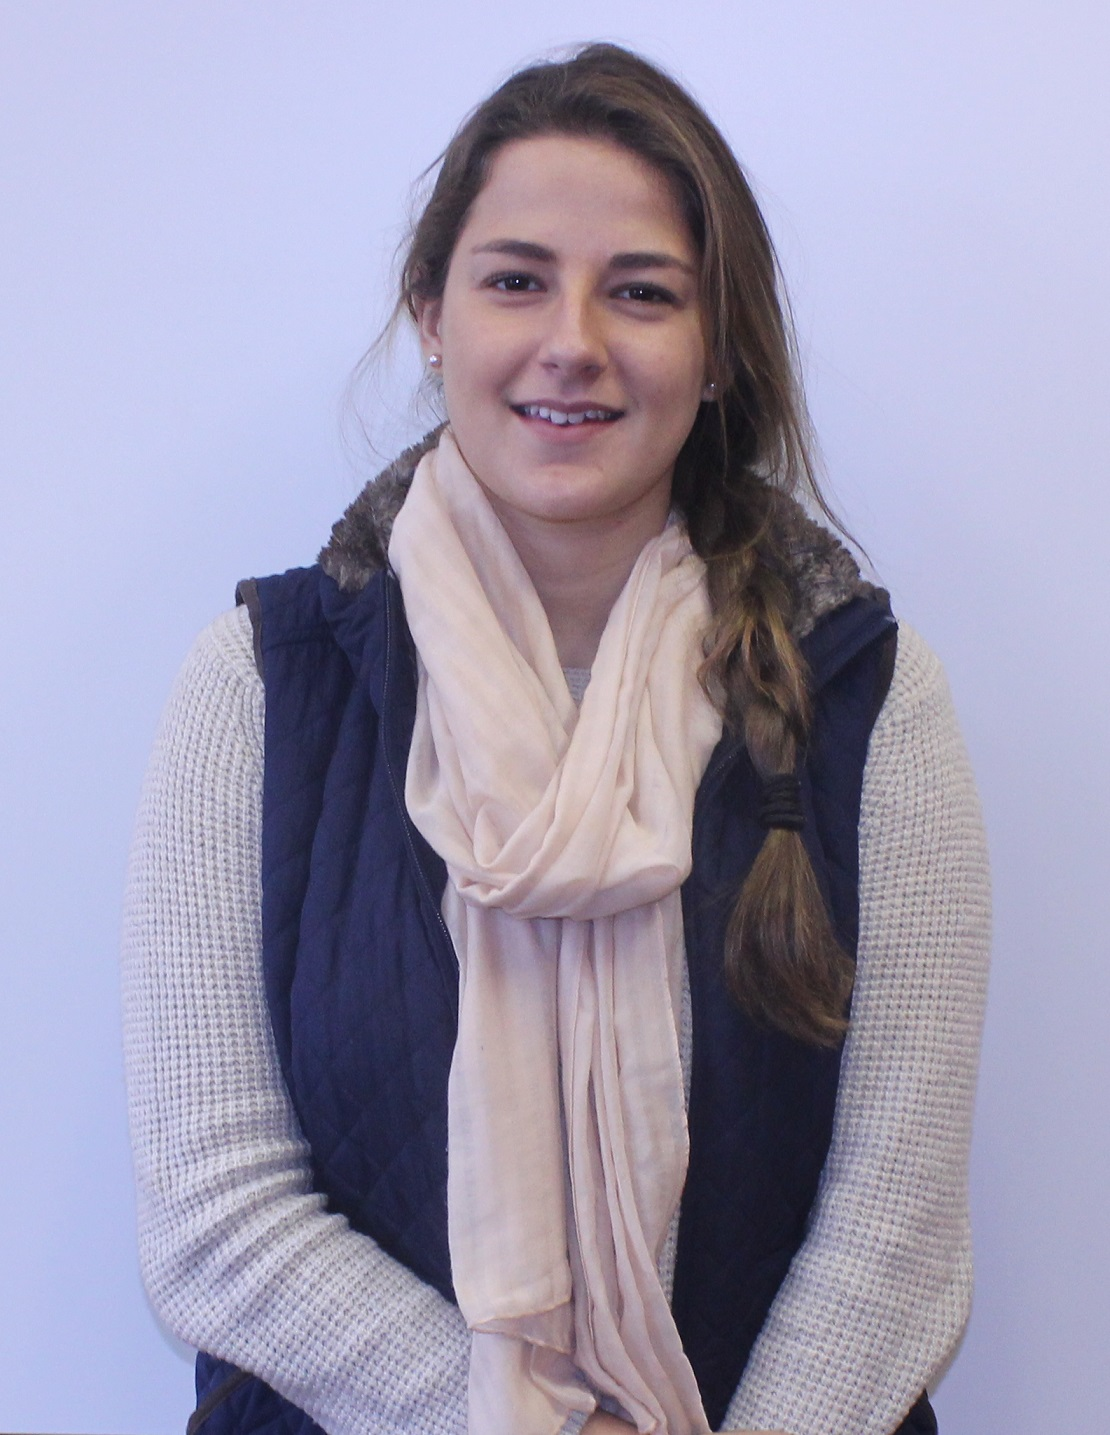 Nicole Thyssen Mexico is studying English at EC Montreal, Canada